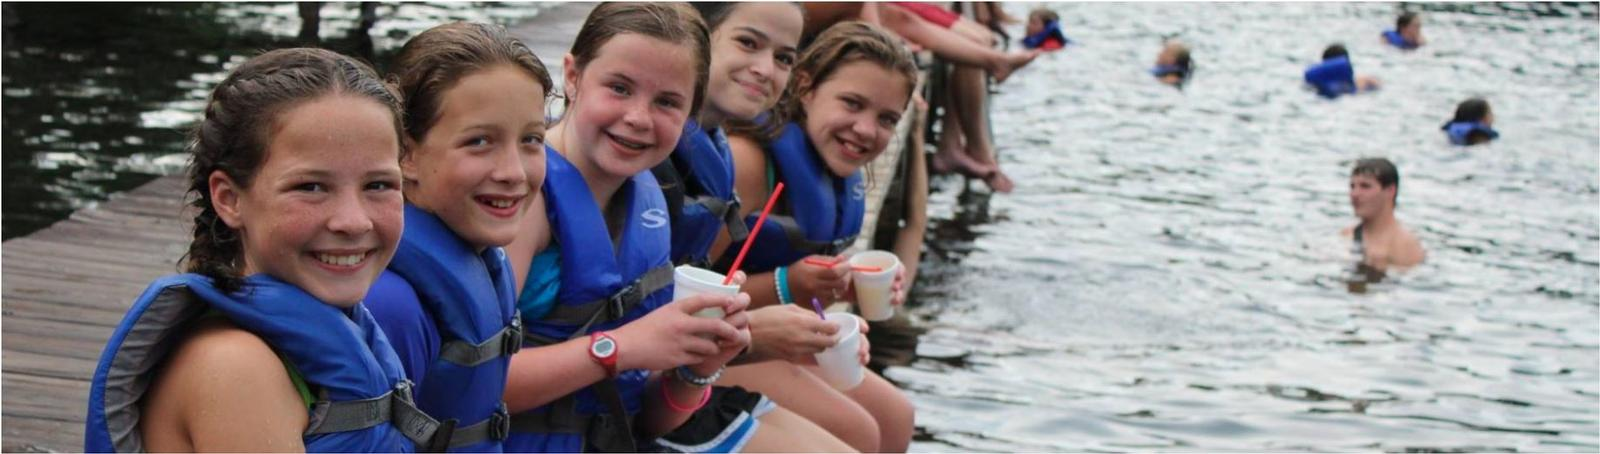 girls in life preservers sitting on a dock